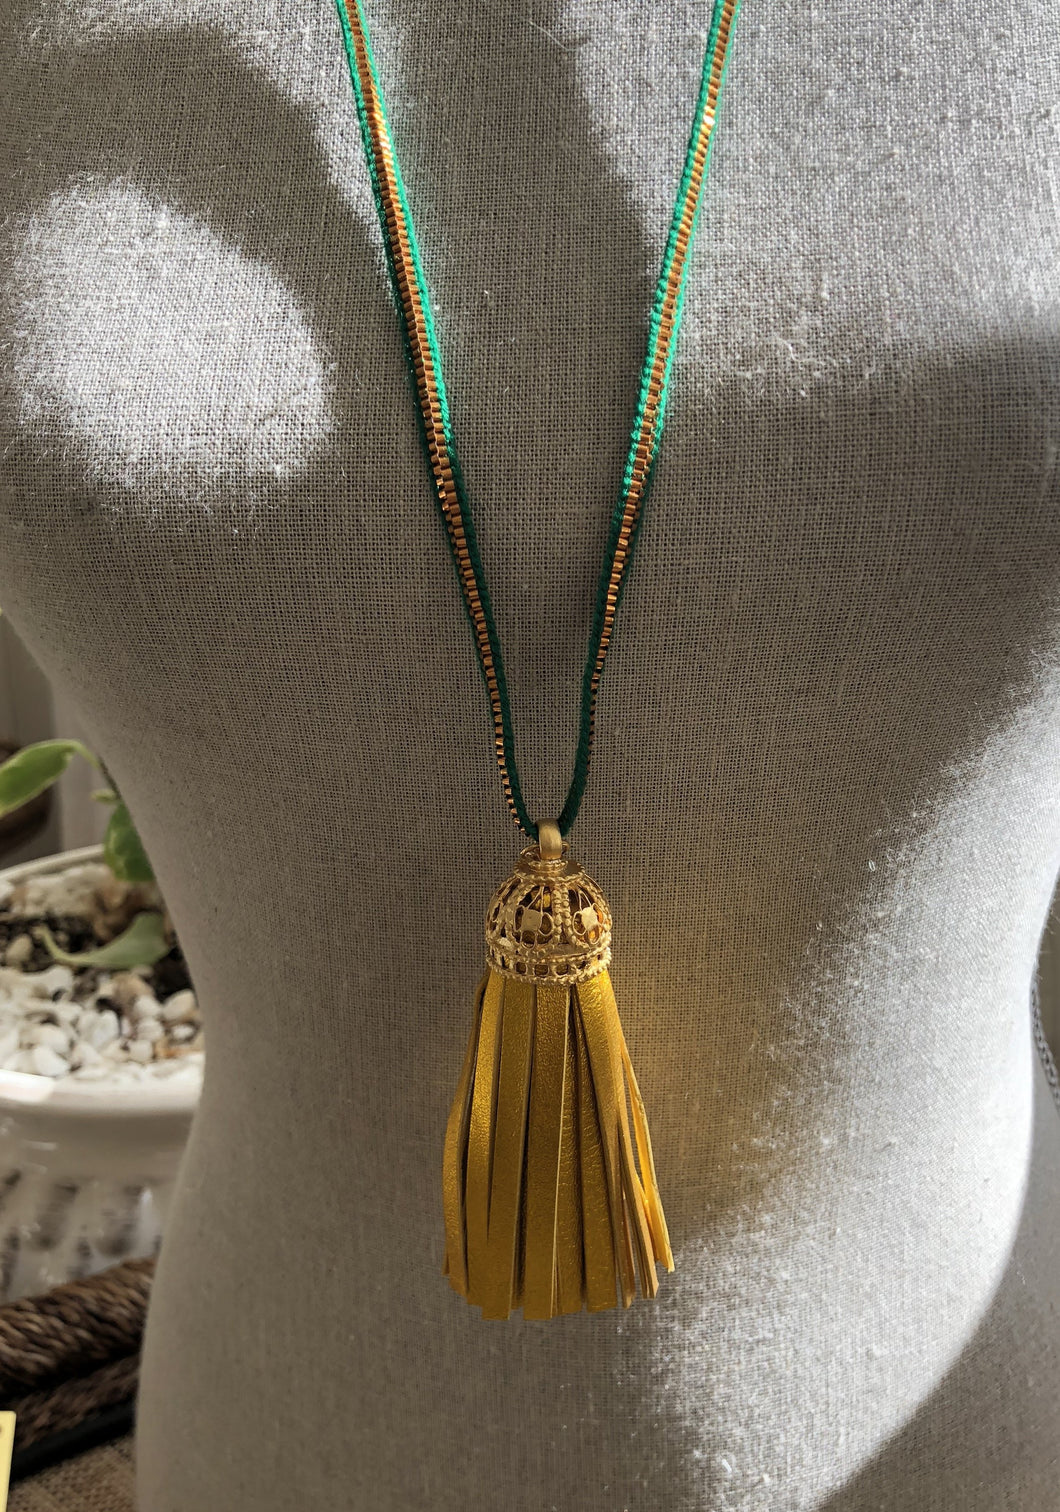 Leather Tassel Necklace - Verde & Gold